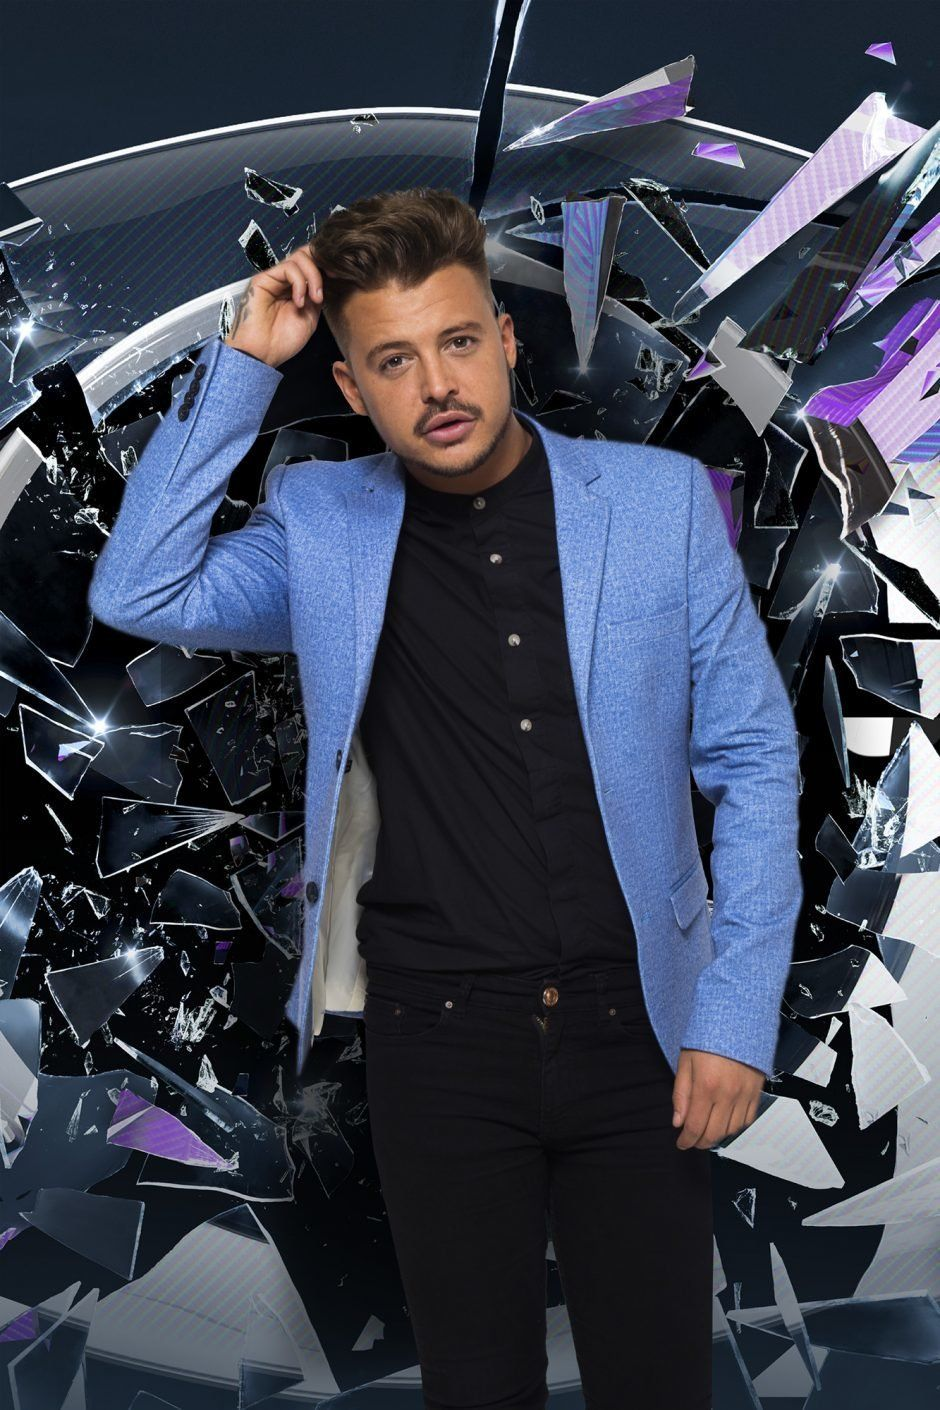 Ryan Ruckledge entered the 'Big Brother' house on